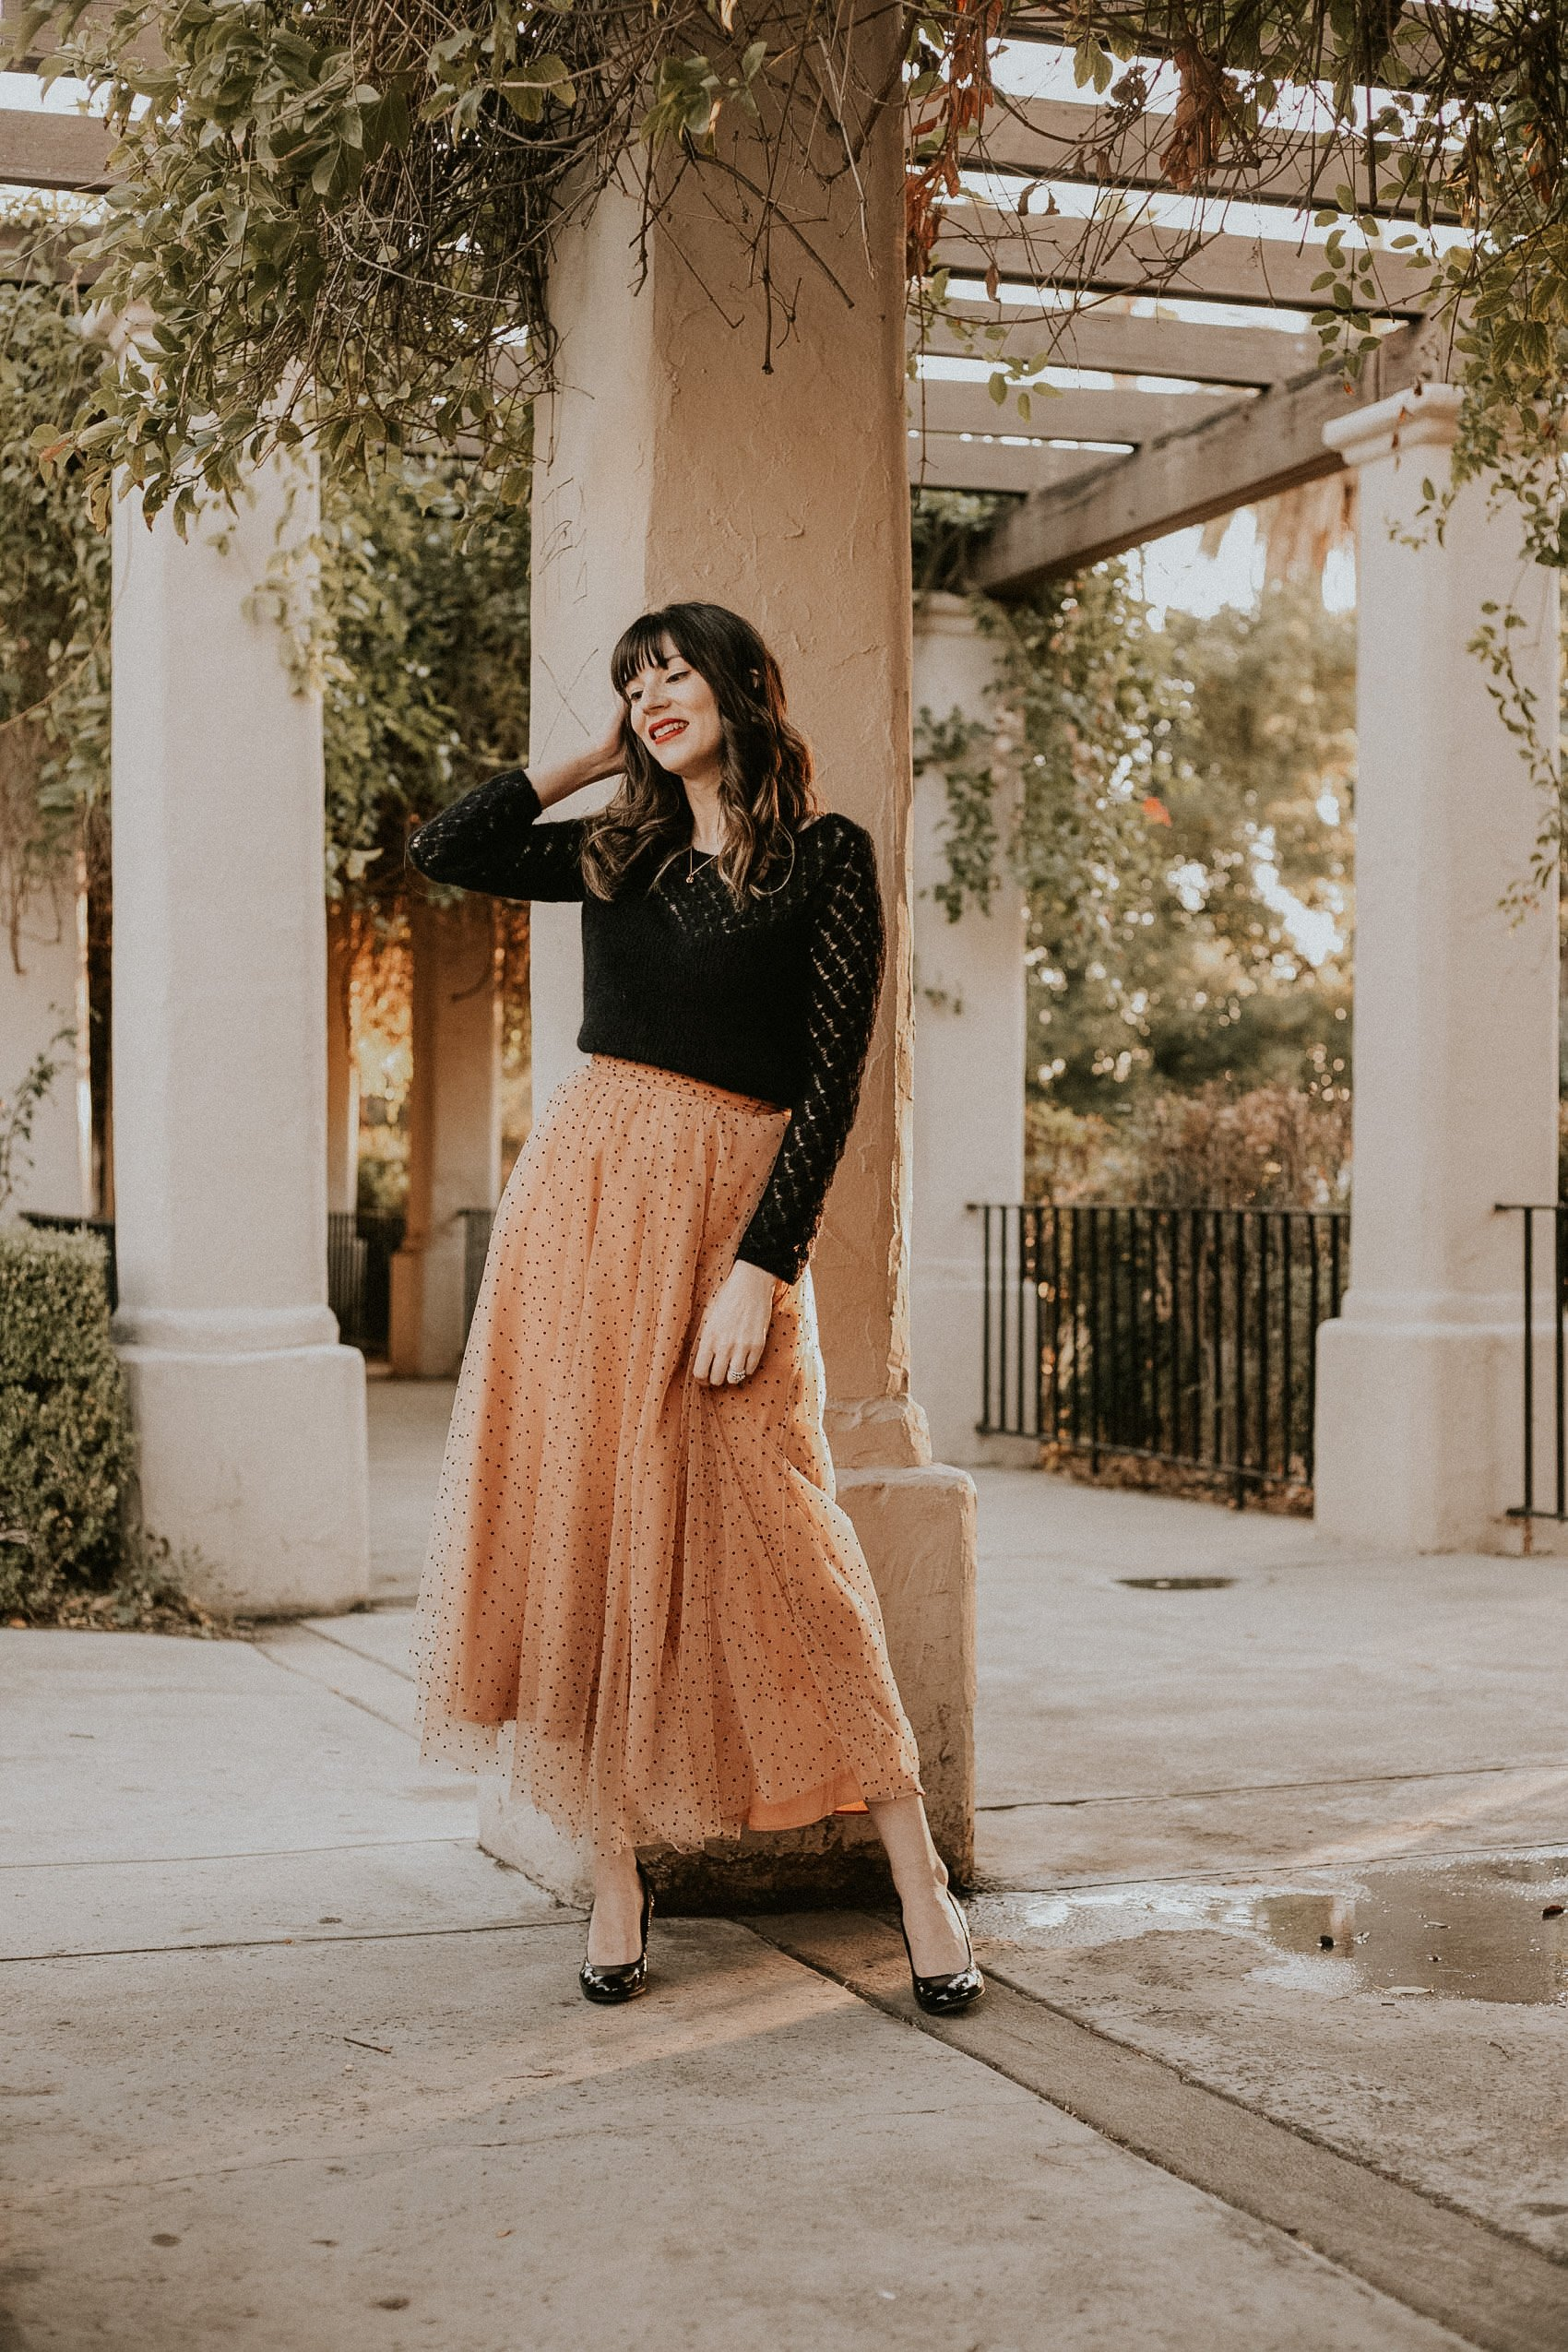 Fashion Blogger wearing a Christmas holiday outfit, champagne tulle skirt with black dots, black sweater and patent leather pumps